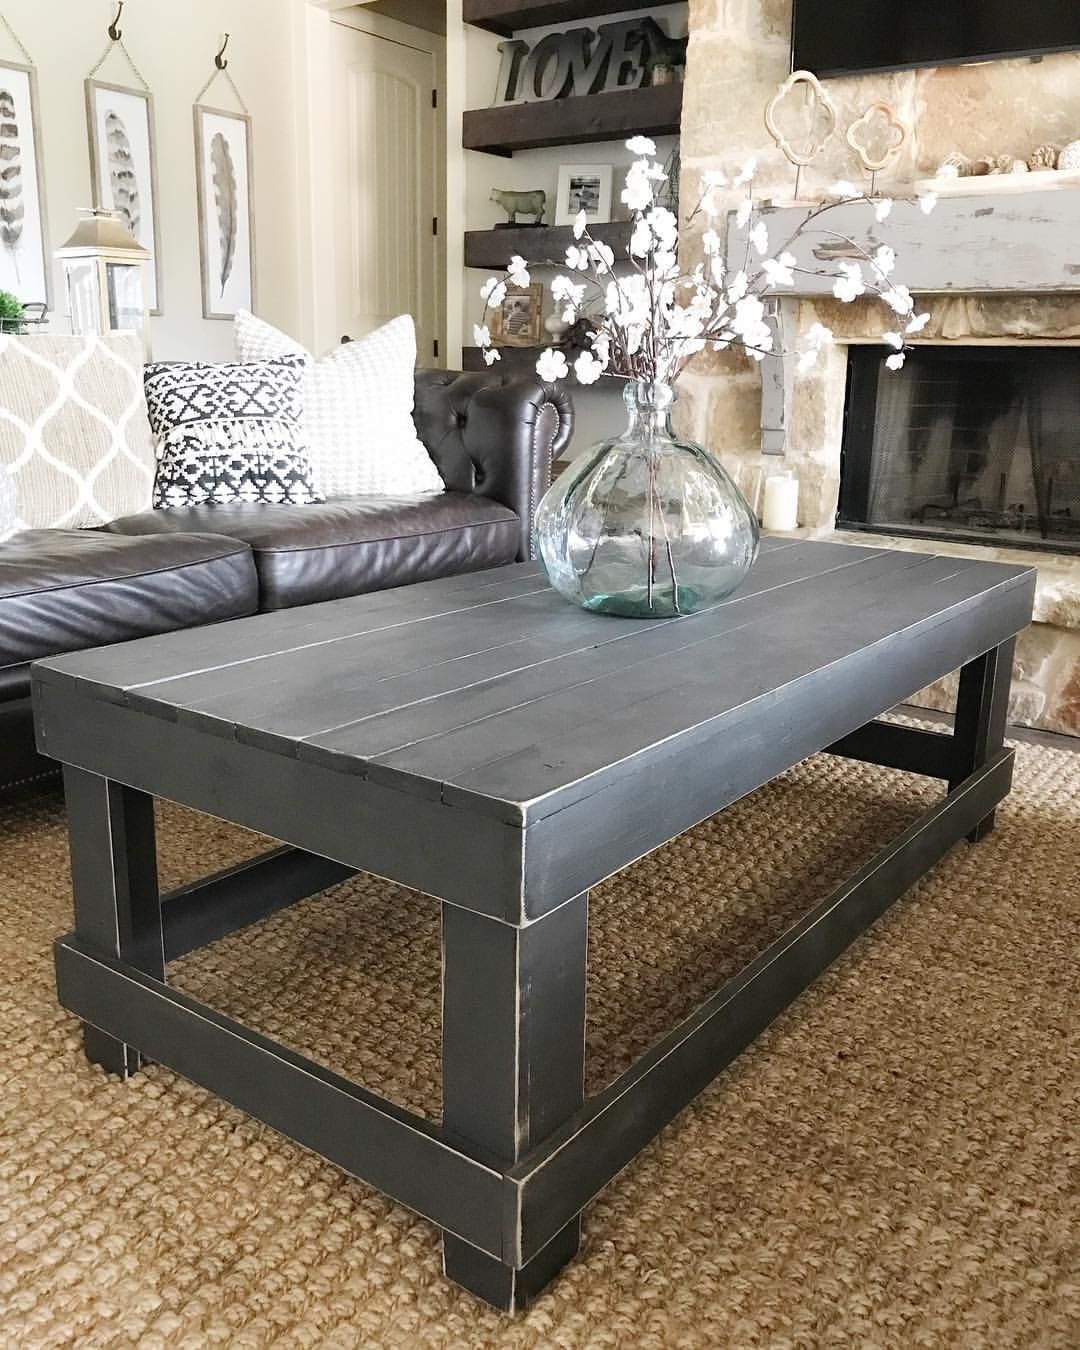 tools boards one cute coffee table click the link diy end ideas our profile watch how easy window side sofa pulaski dog crate ott cage made wood rustic farmhouse oak and glass